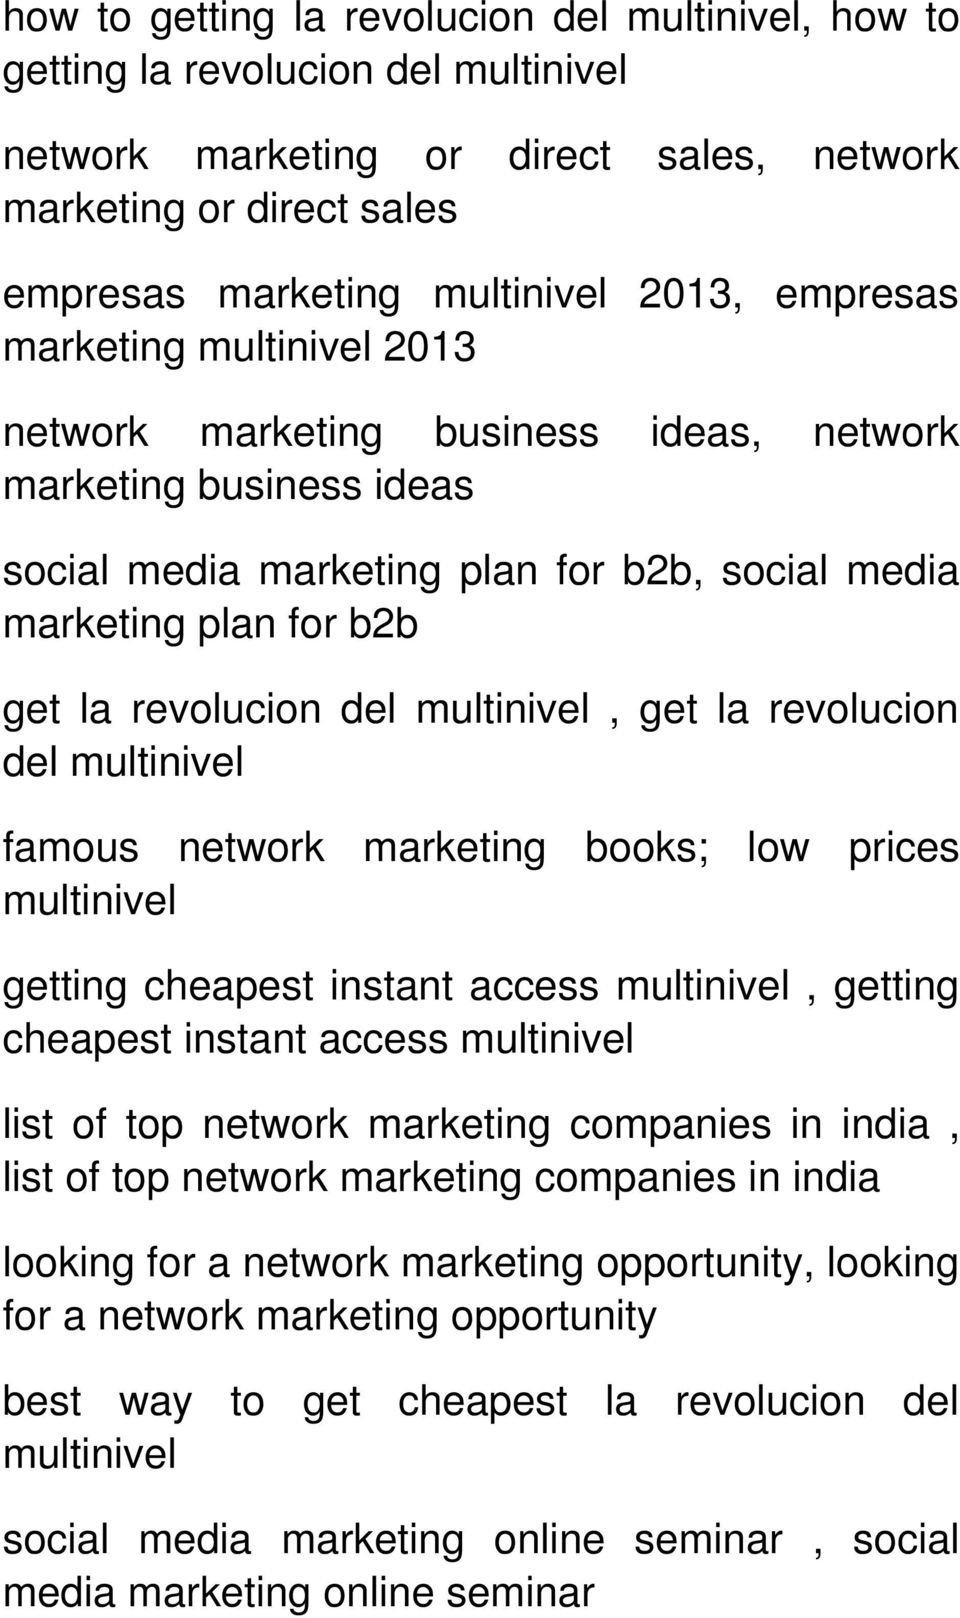 multinivel, get la revolucion del multinivel famous network marketing books; low prices multinivel getting cheapest instant access multinivel, getting cheapest instant access multinivel list of top